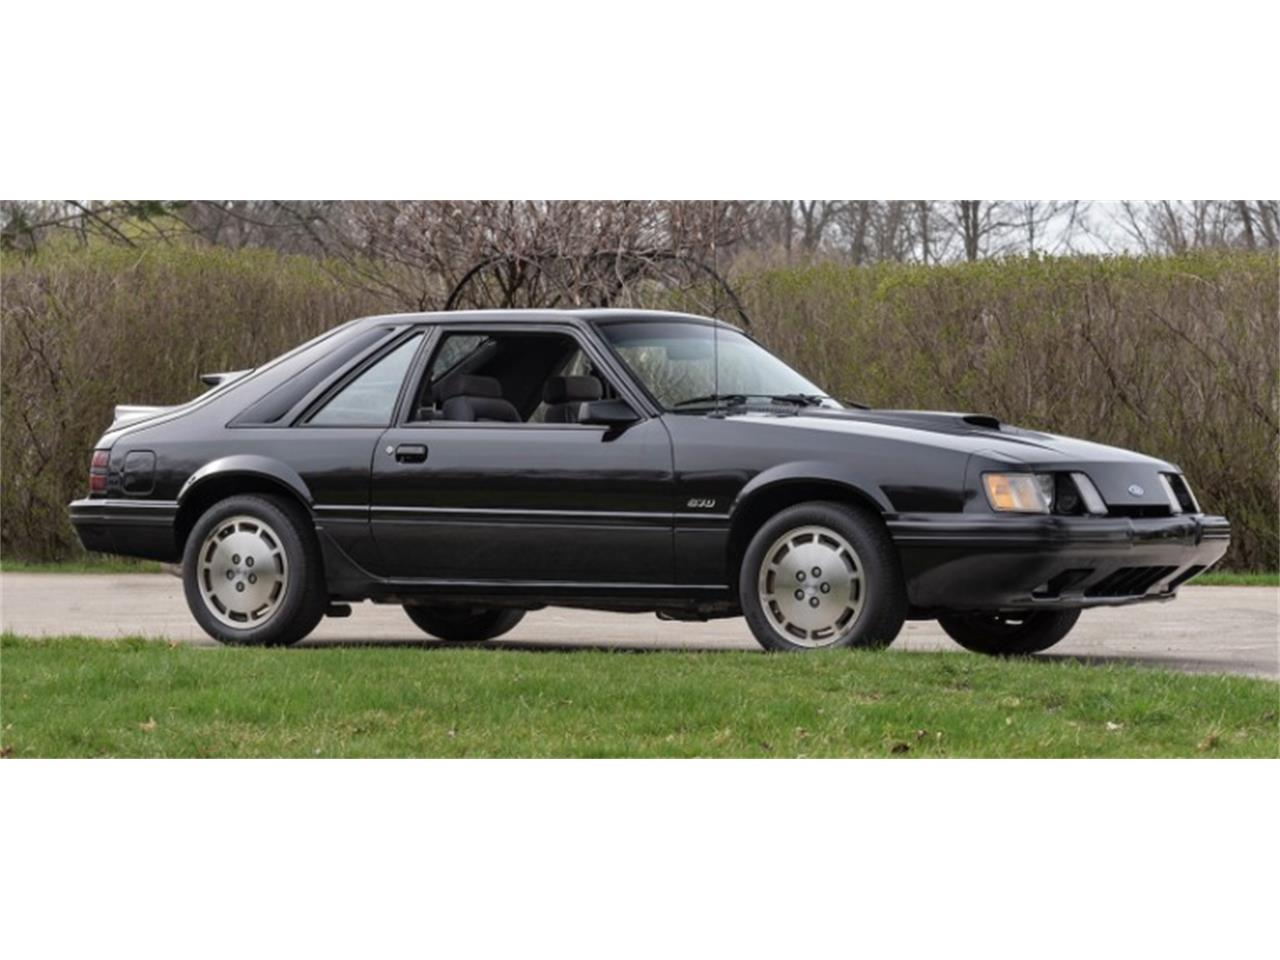 Large Picture of 1984 Ford Mustang located in Illinois - Q46S